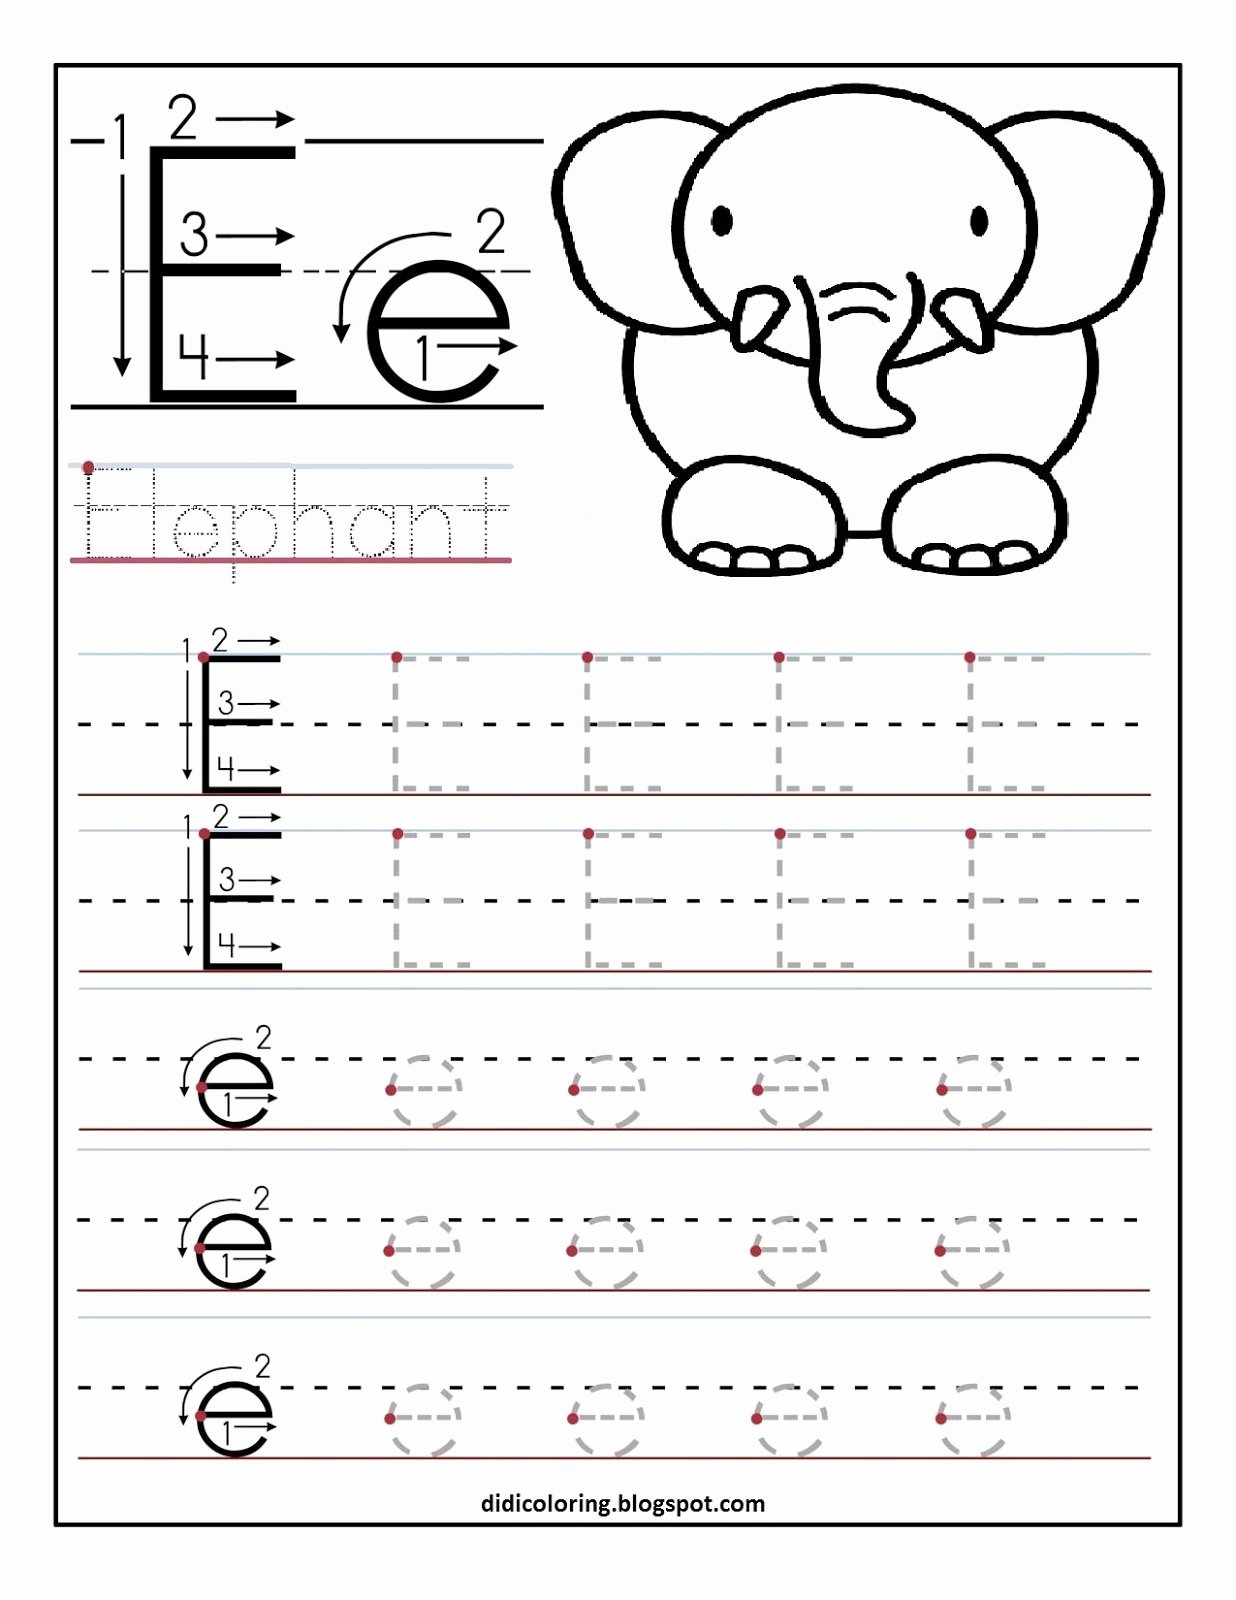 Worksheets for Preschoolers Learning to Write Printable Worksheets Learning Write Worksheets How Printable Letter